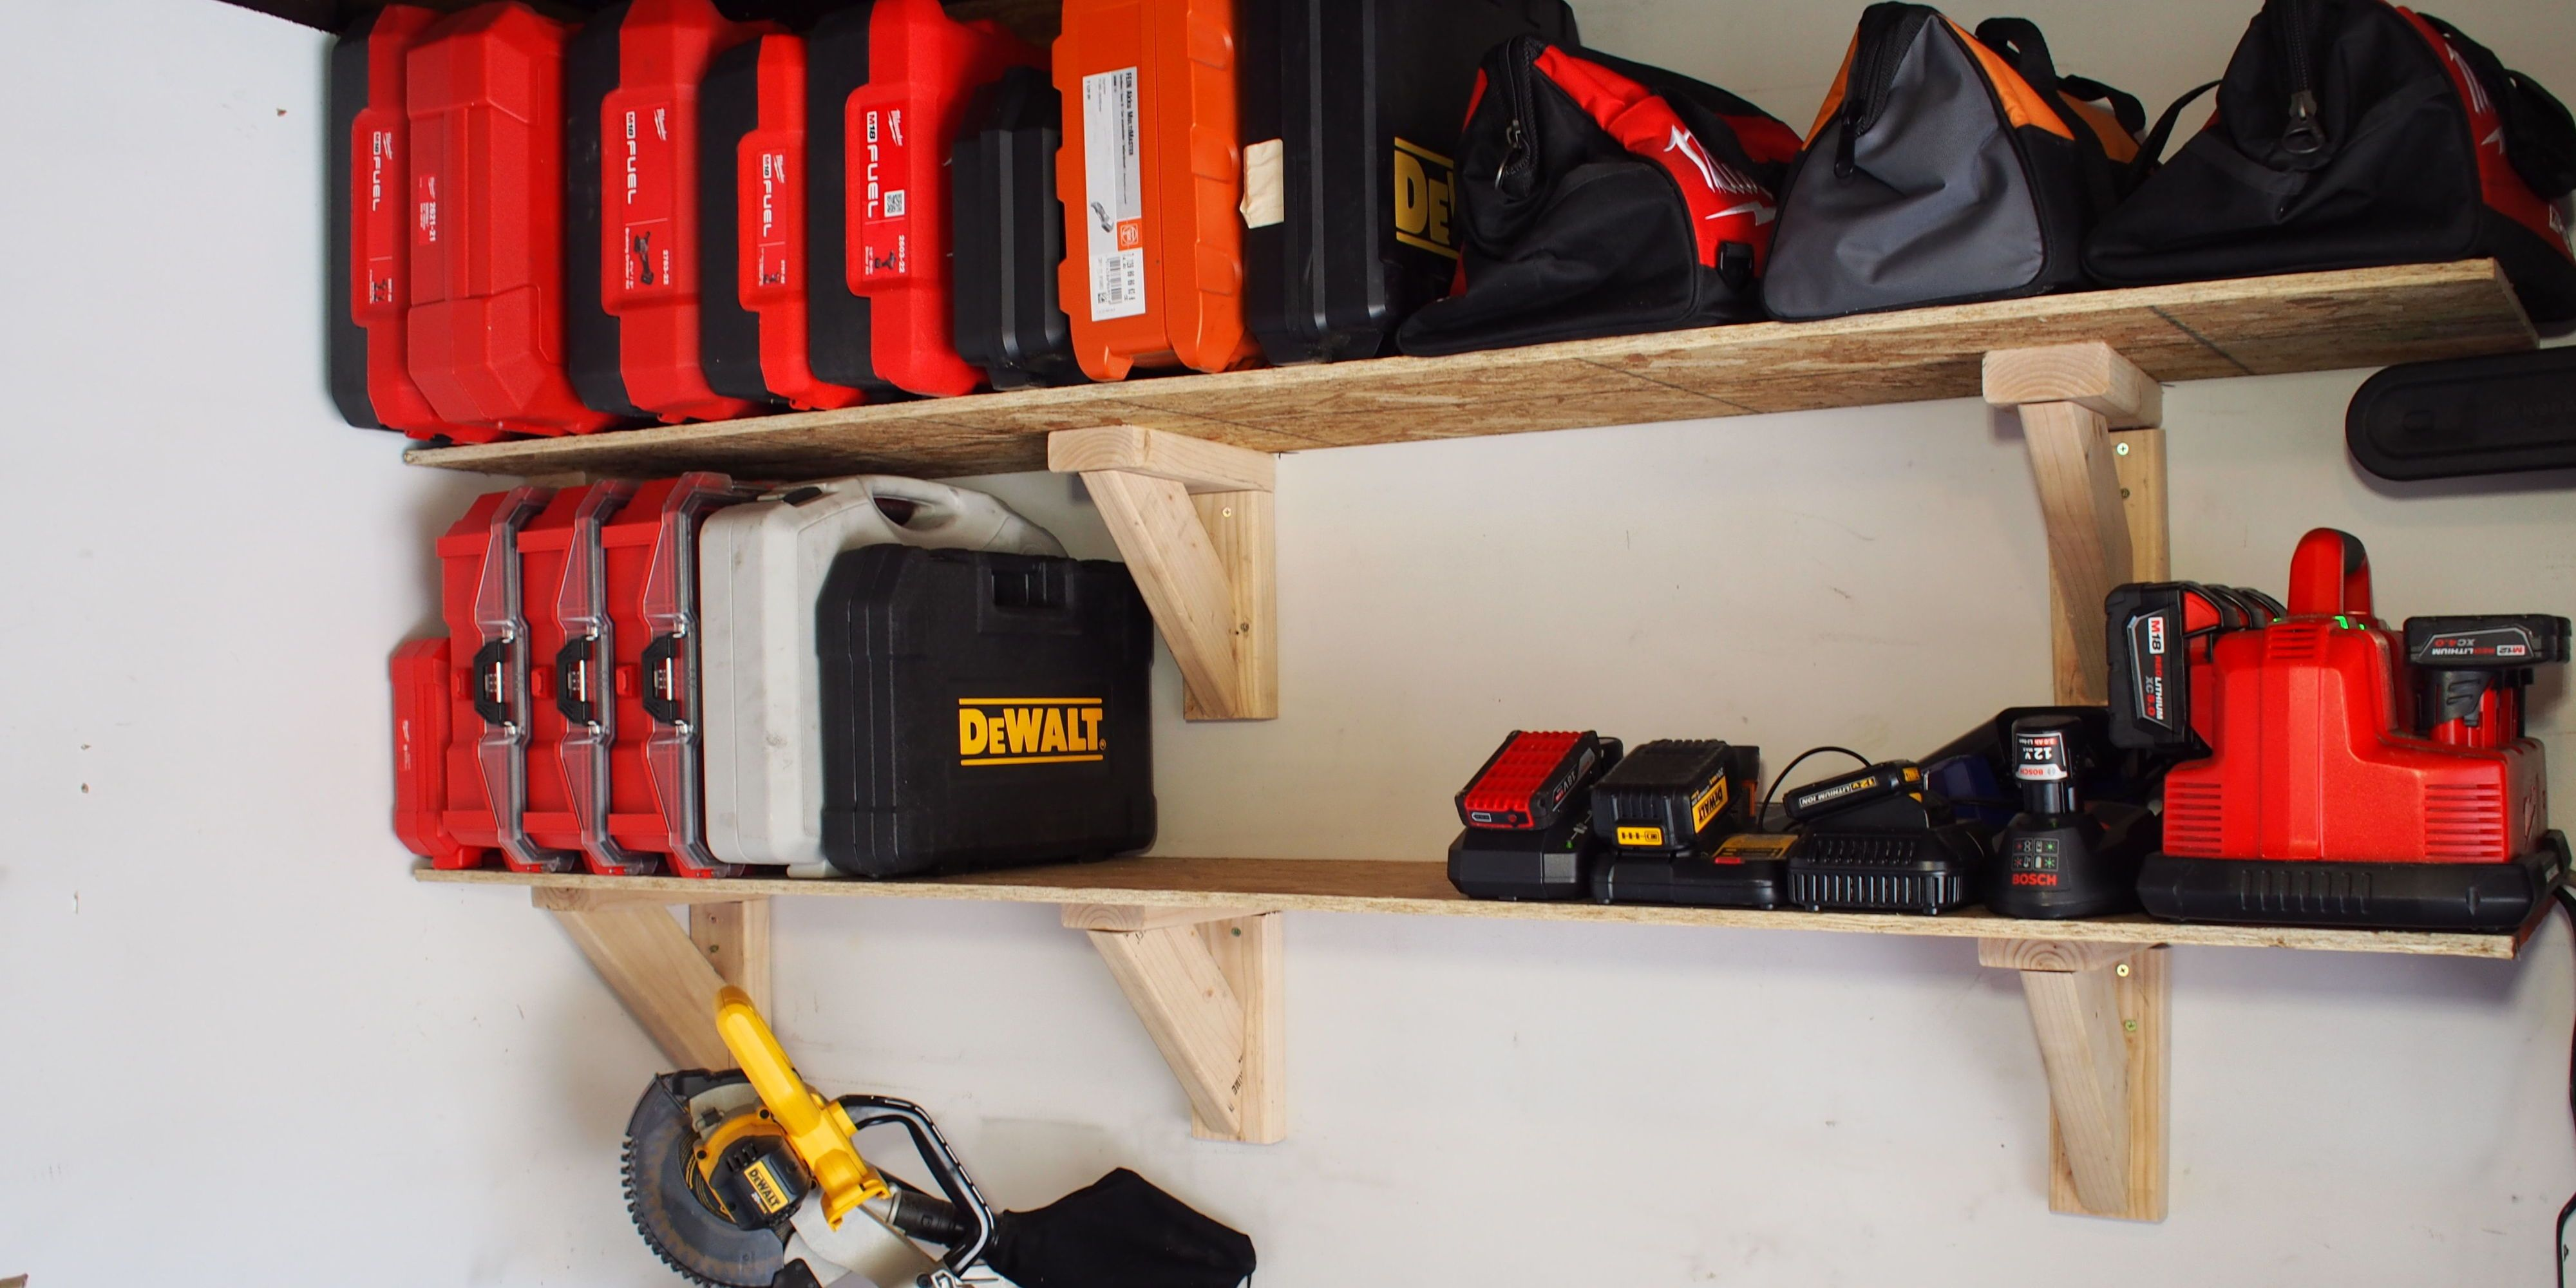 & How to Build Garage Storage Shelves on the Cheap